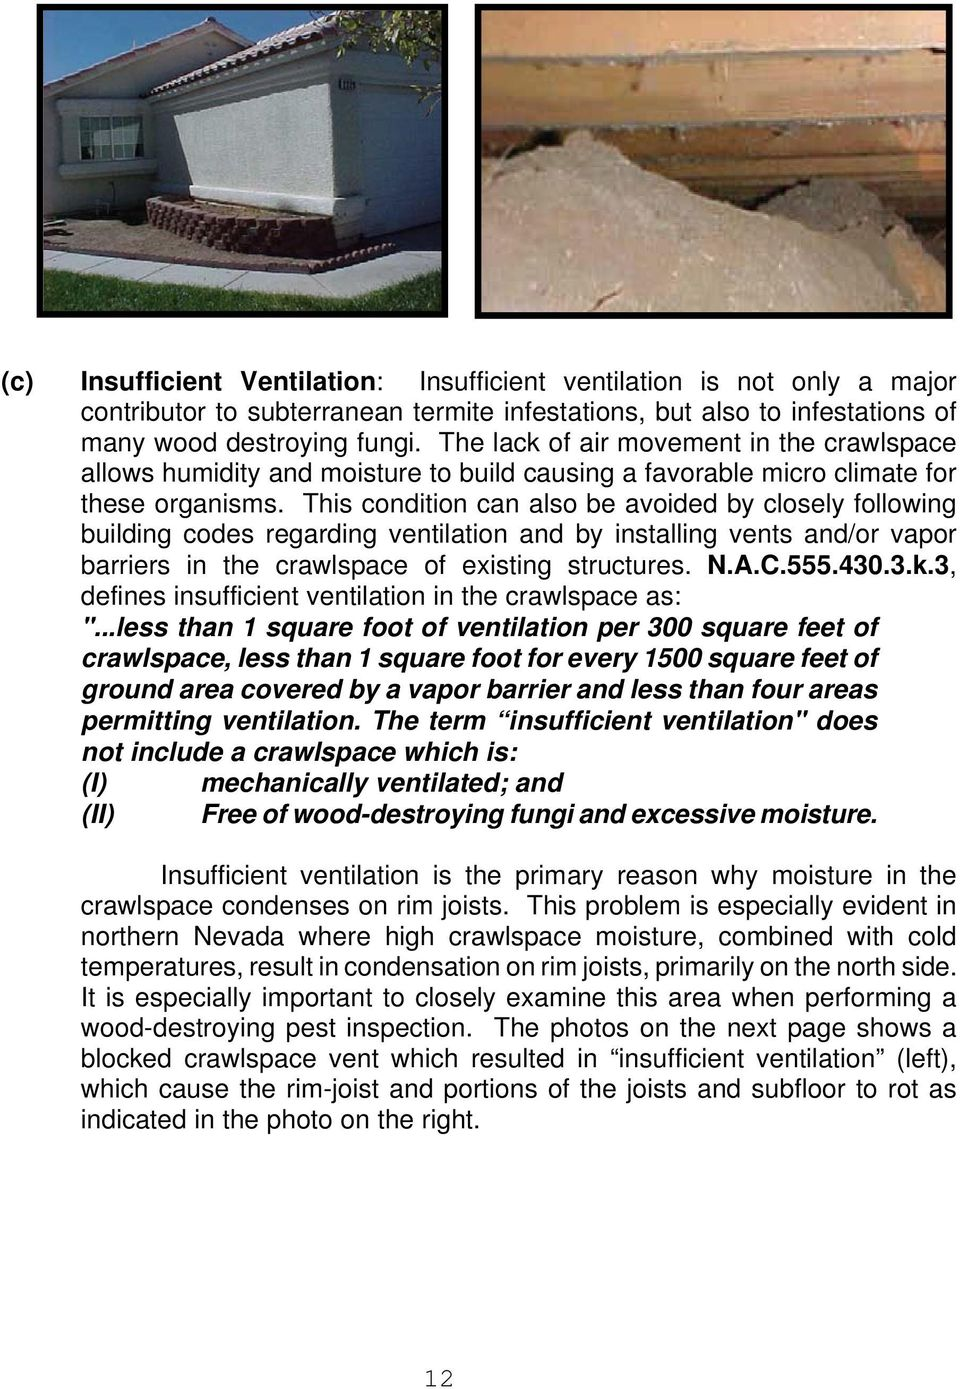 This condition can also be avoided by closely following building codes regarding ventilation and by installing vents and/or vapor barriers in the crawlspace of existing structures. N.A.C.555.430.3.k.